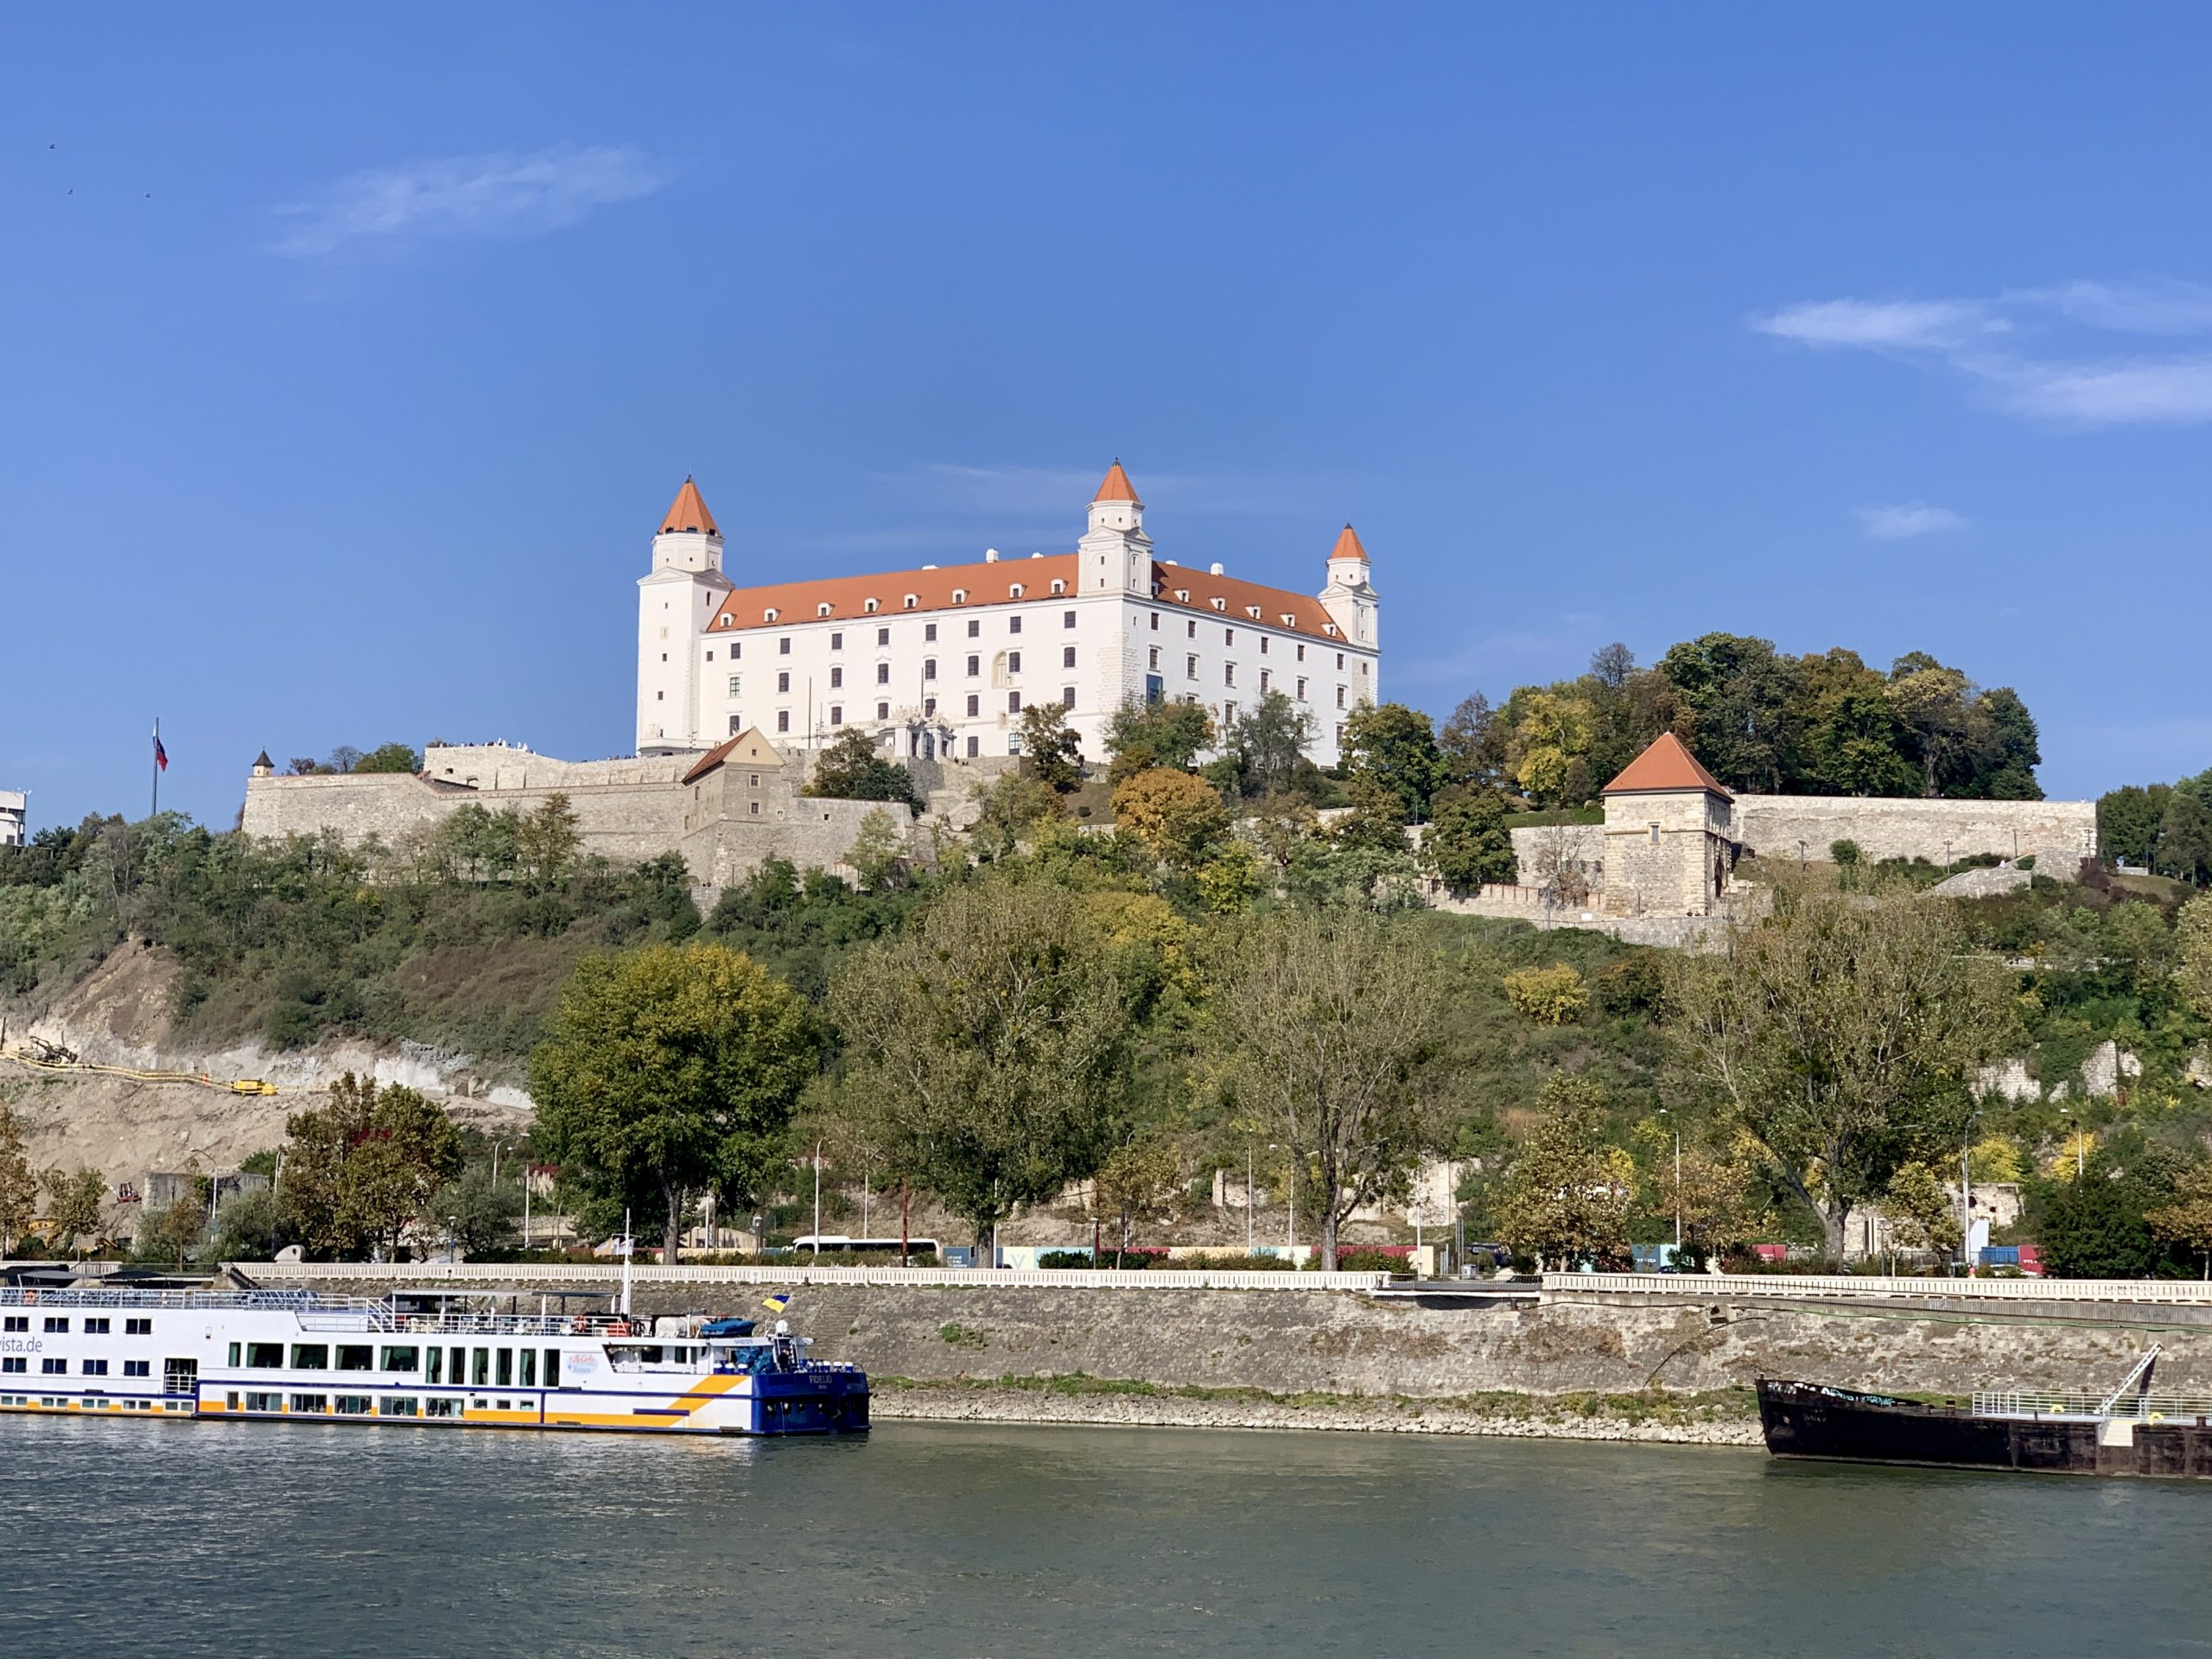 Bratislava view from the AmaMagna on the Melodies of the Danube river cruise